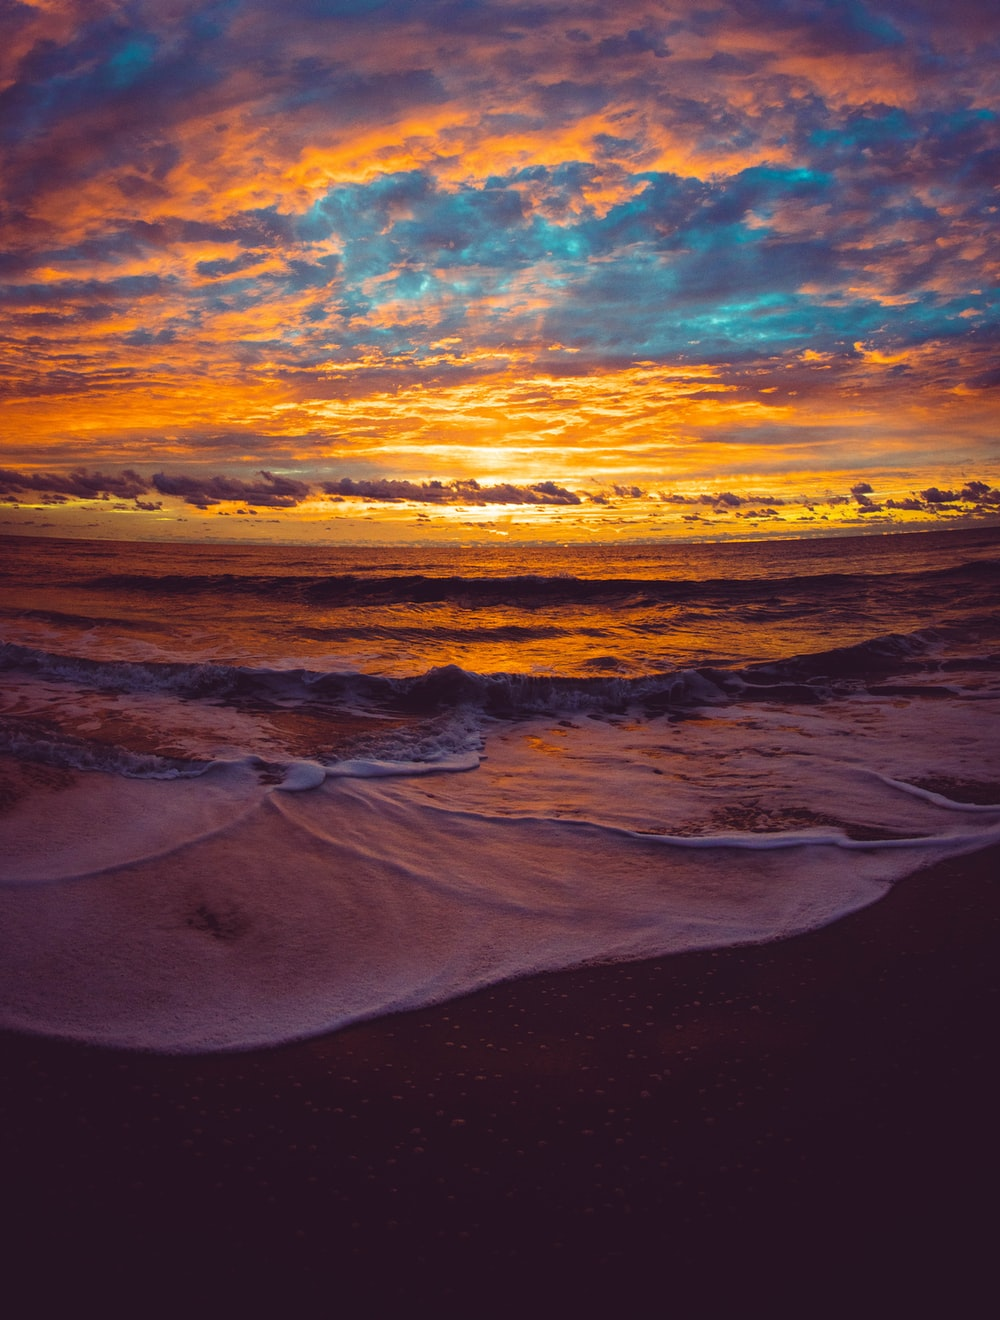 brown and white ocean waves during sunset